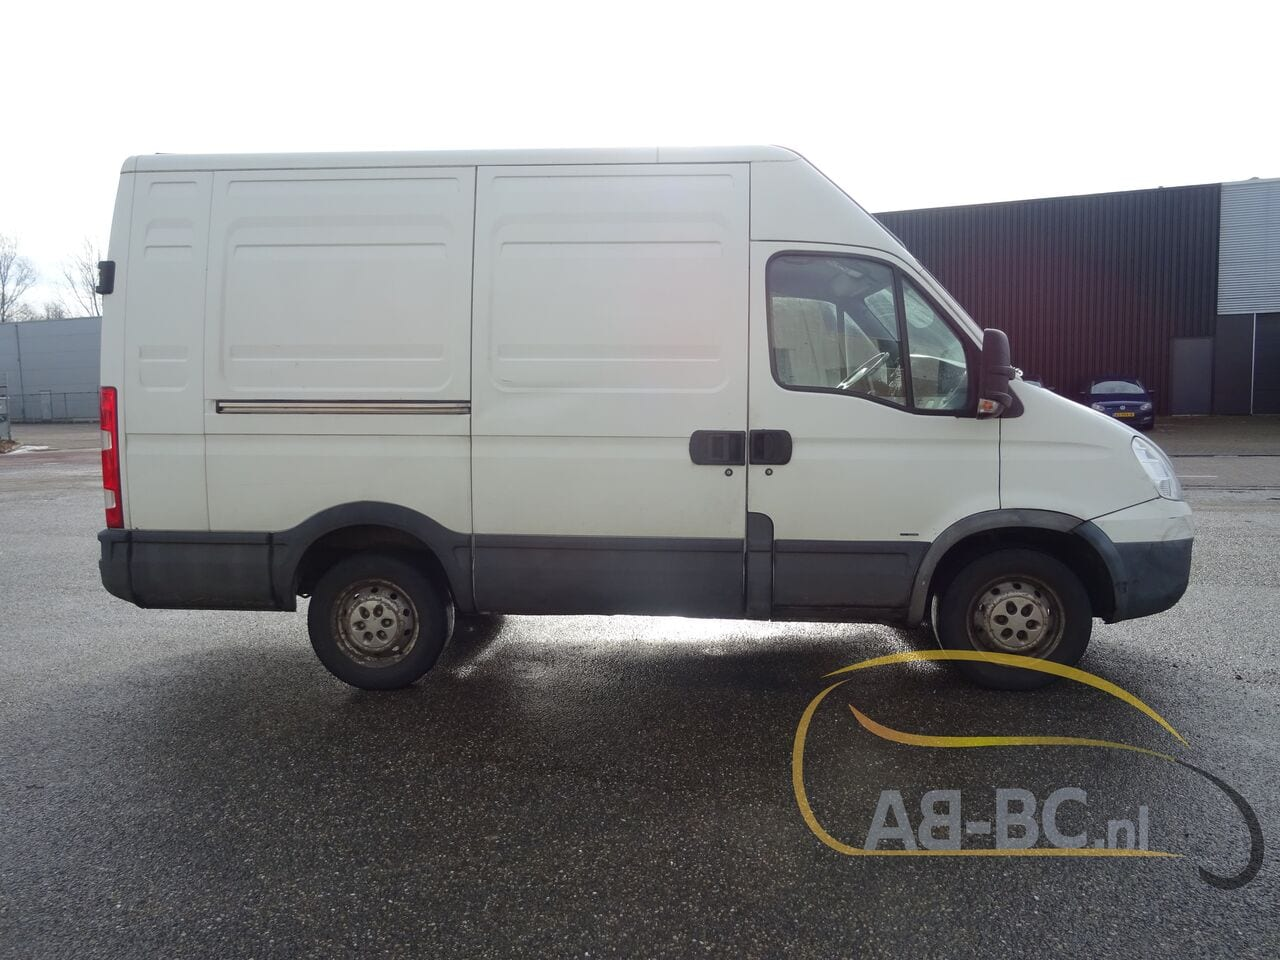 commercial-vehicle-closed-box-vanIVECO-Daily-35S18V-Automaat-180-PK---1613469749825447439_big--21021612014011202200